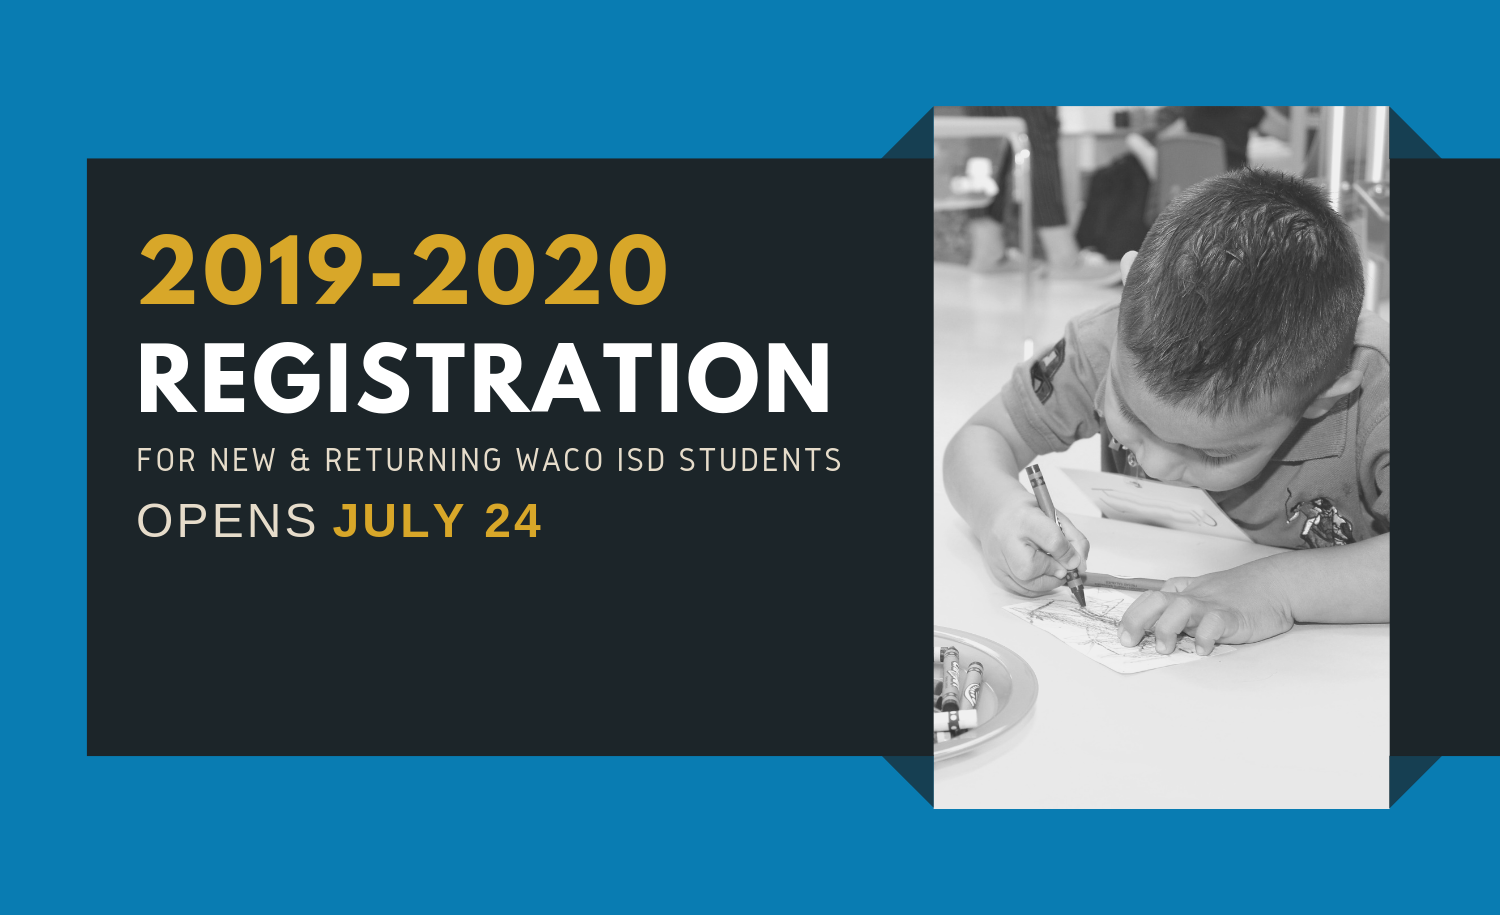 Registration for the 2019-2020 school year opens July 24